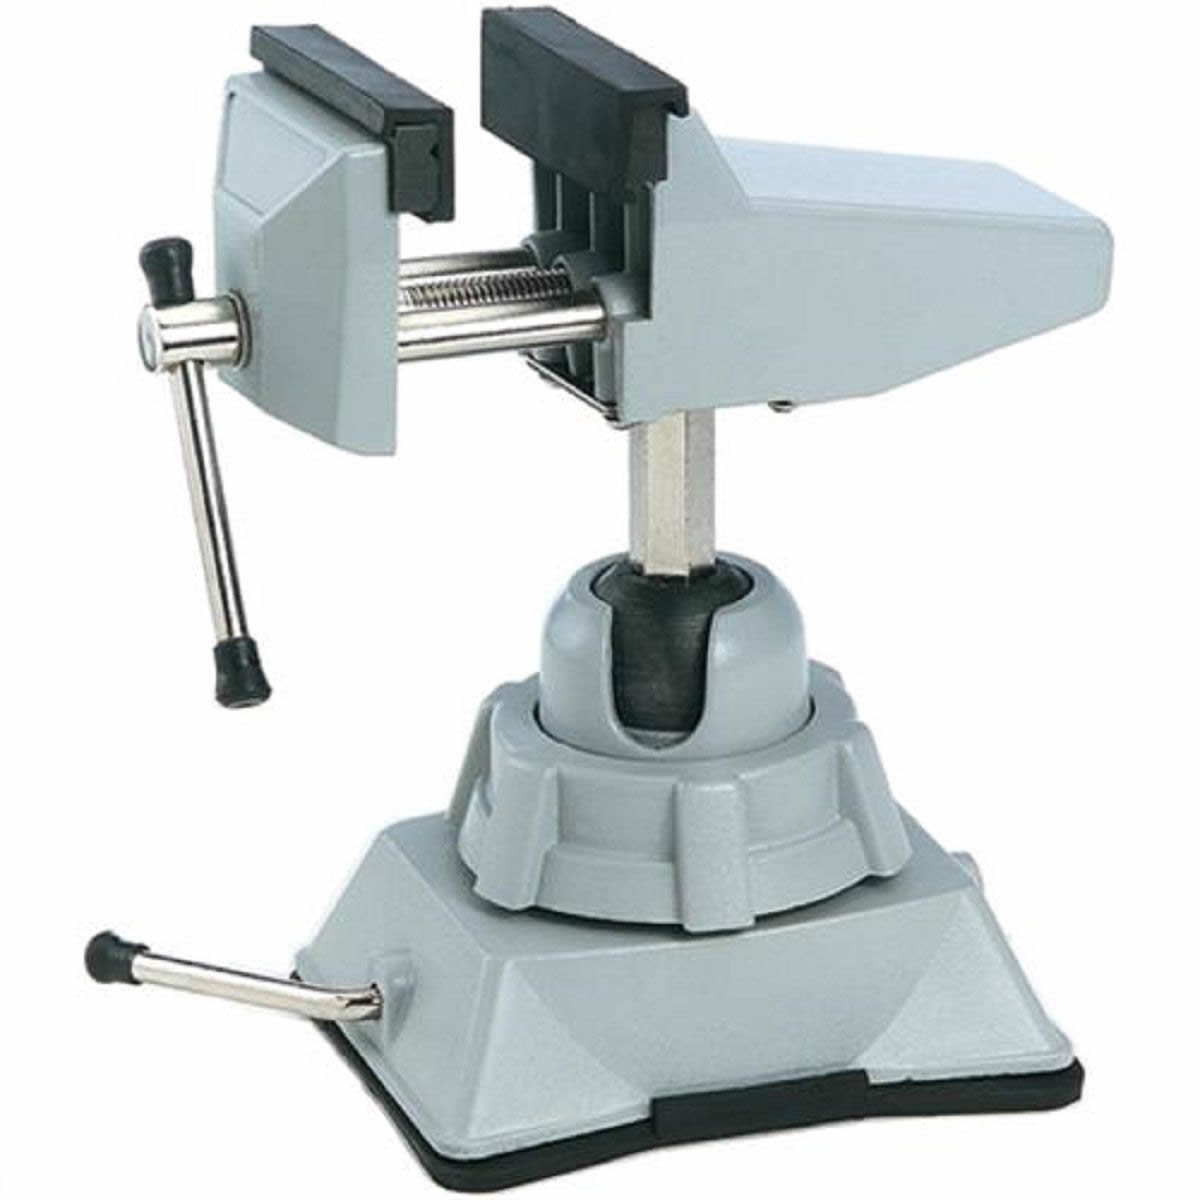 Pro Mini Tool Soft Jaw Vice Universal Clamp On Hobby Jeweler`s Bench Table Vise